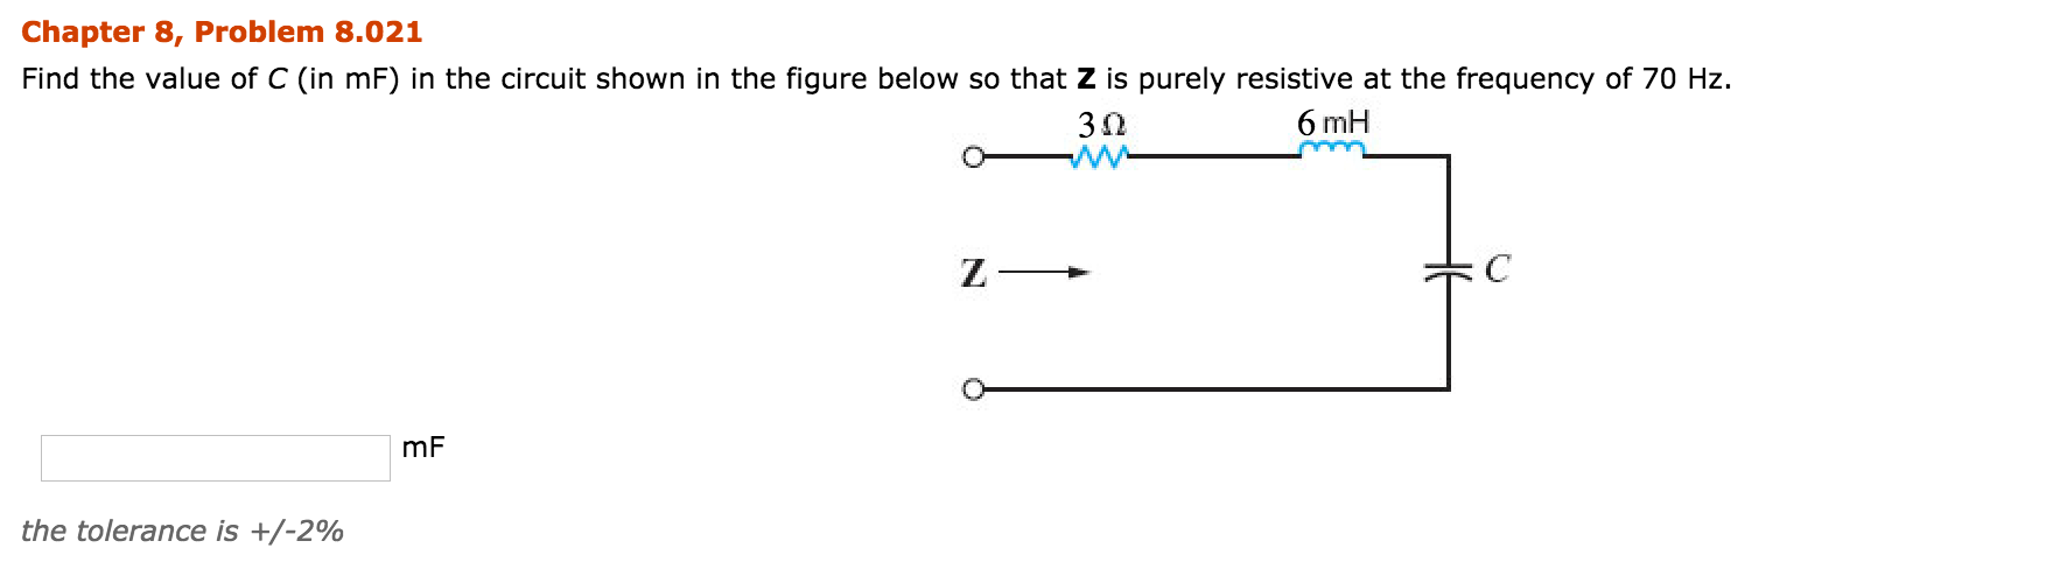 Electrical engineering archive november 20 2016 chegg chapter 8 problem 8012 find the impedance z shown in the figure below at a frequency of 400 hz 10 mh 2 n 10 ohm 10 hf t j fandeluxe Choice Image